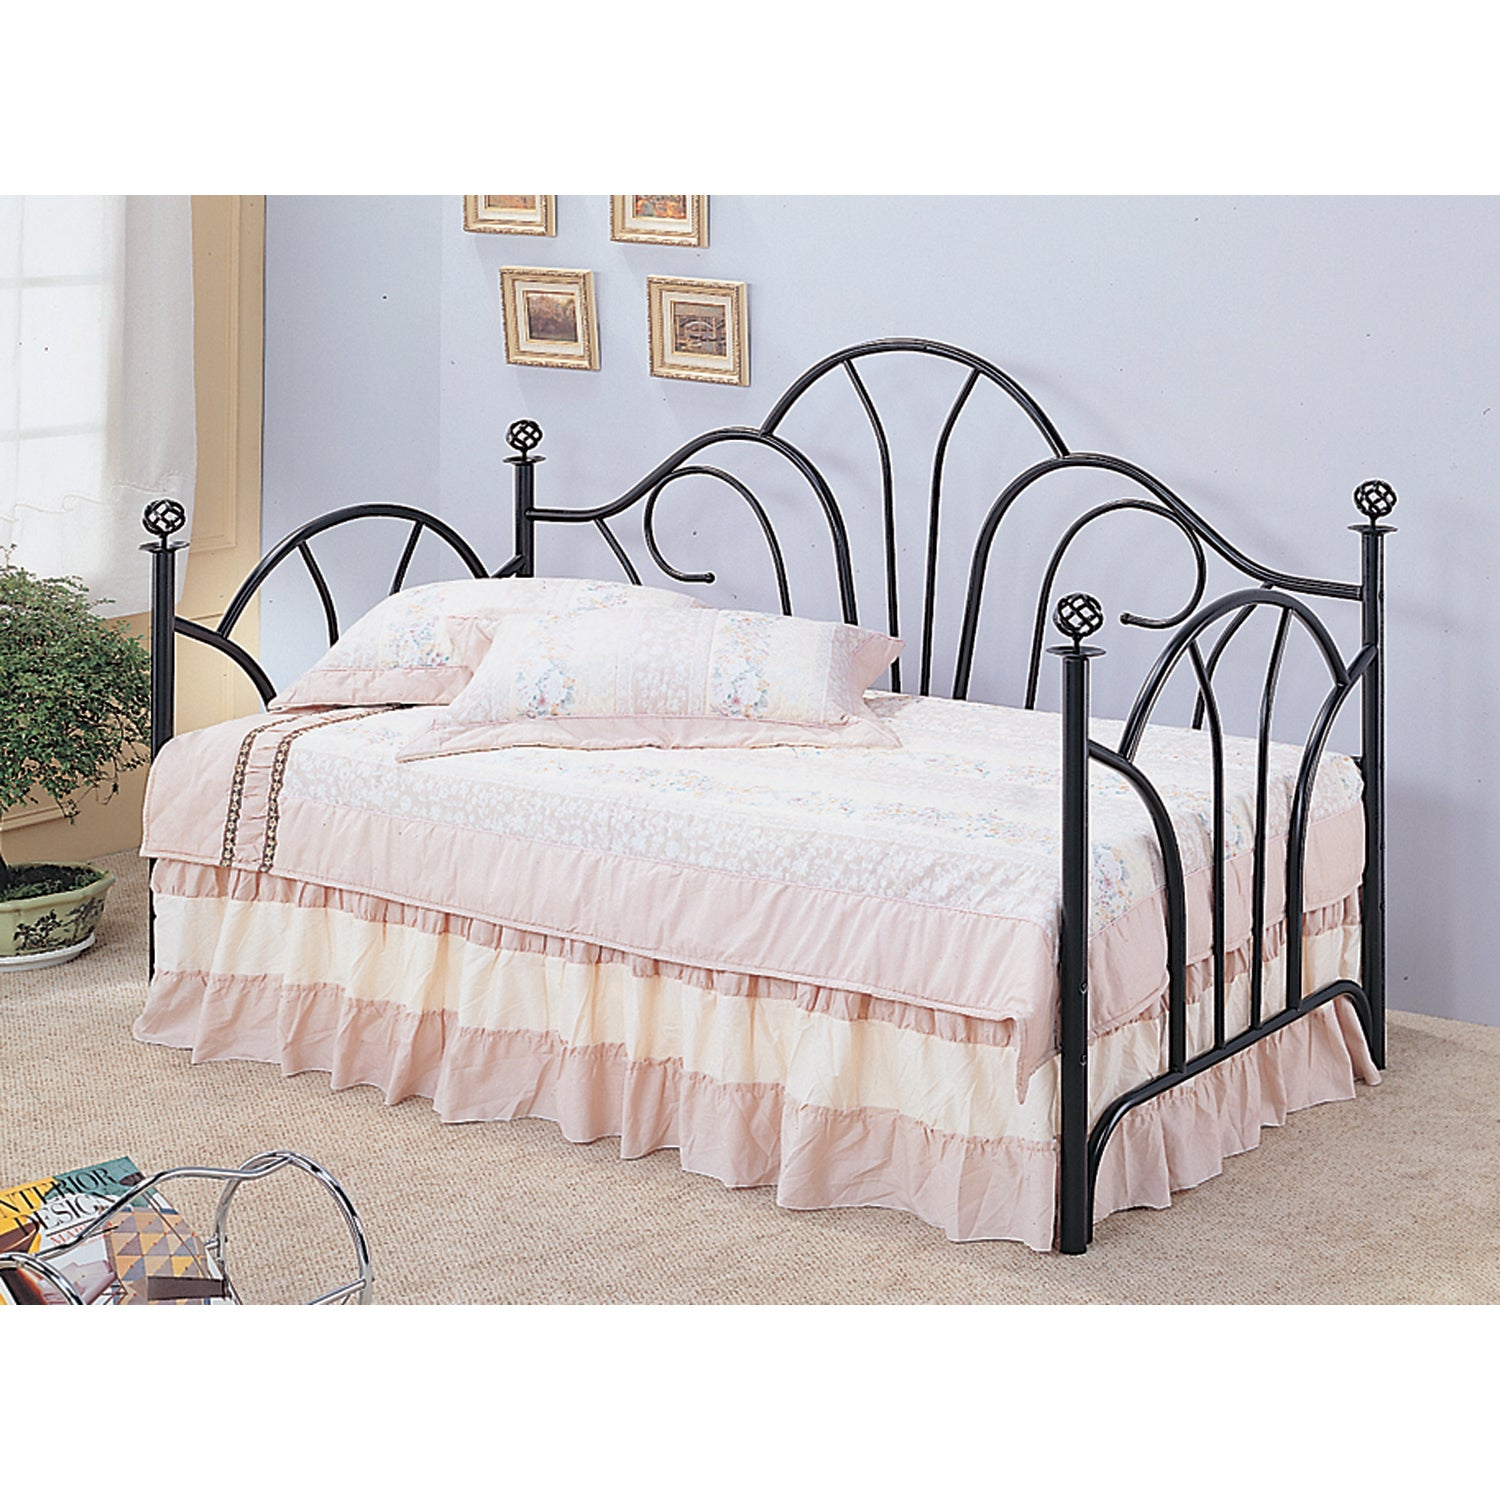 Coaster Furniture Black Metal Twin Daybed (Daybed)